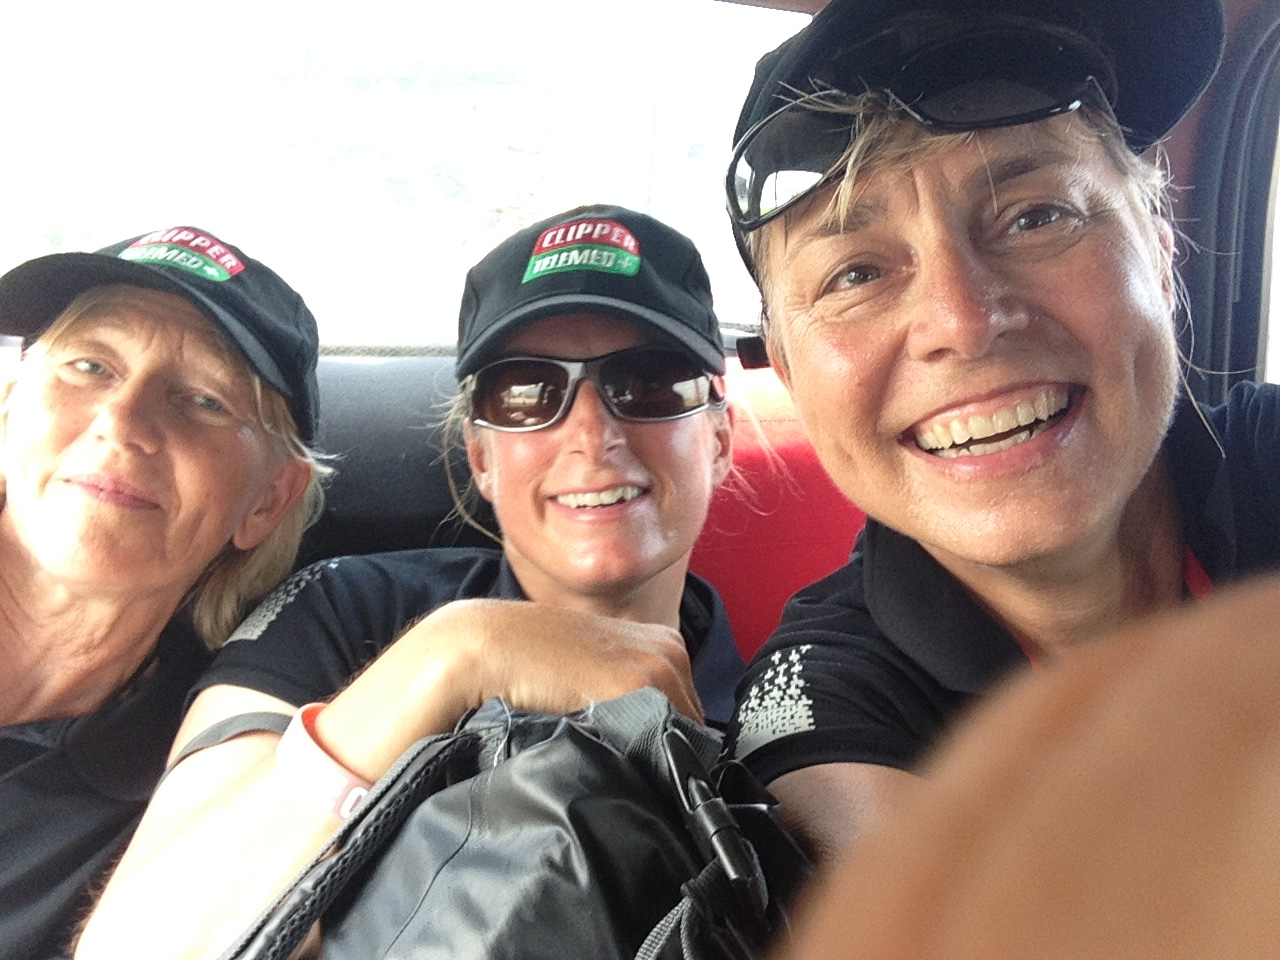 Piled into a taxi headed for the Best Western in Panama City :-D